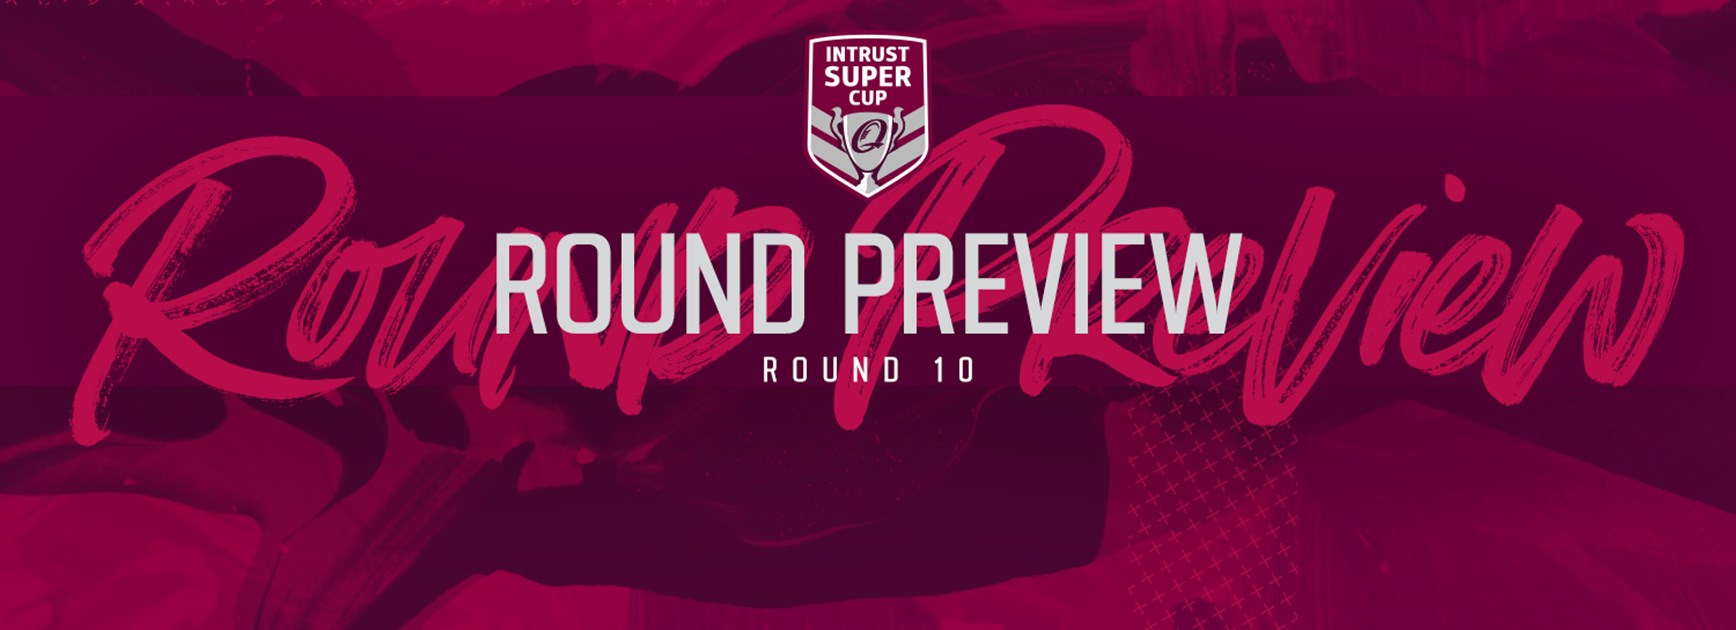 Intrust Super Cup Round 10 preview: Teams back in action!